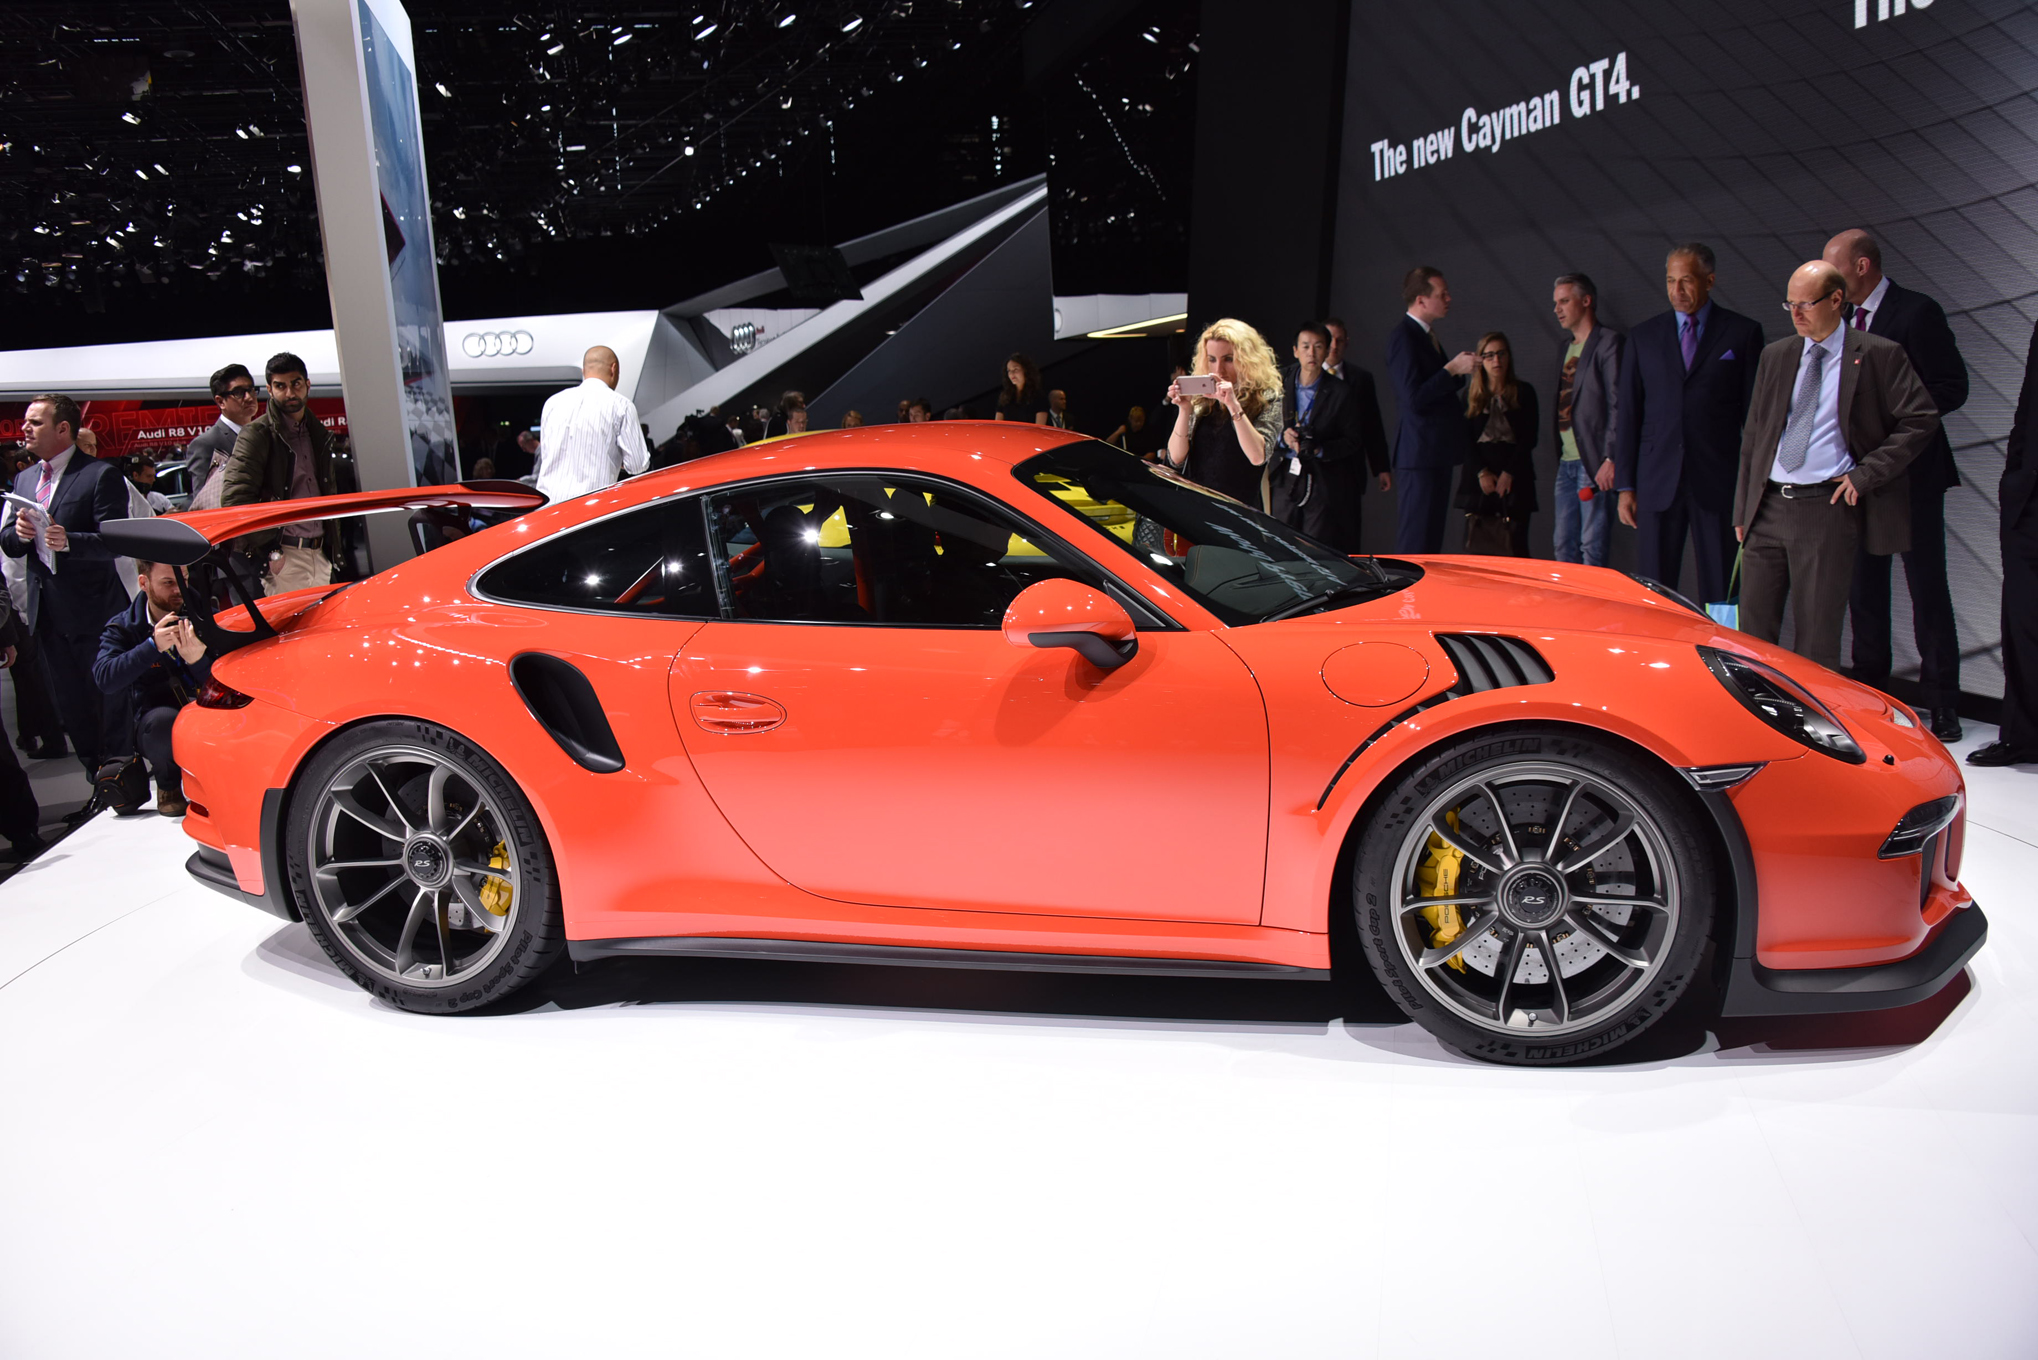 2016 Porsche 911 Gt3 Rs Arrives In U S This July With 500 Hp